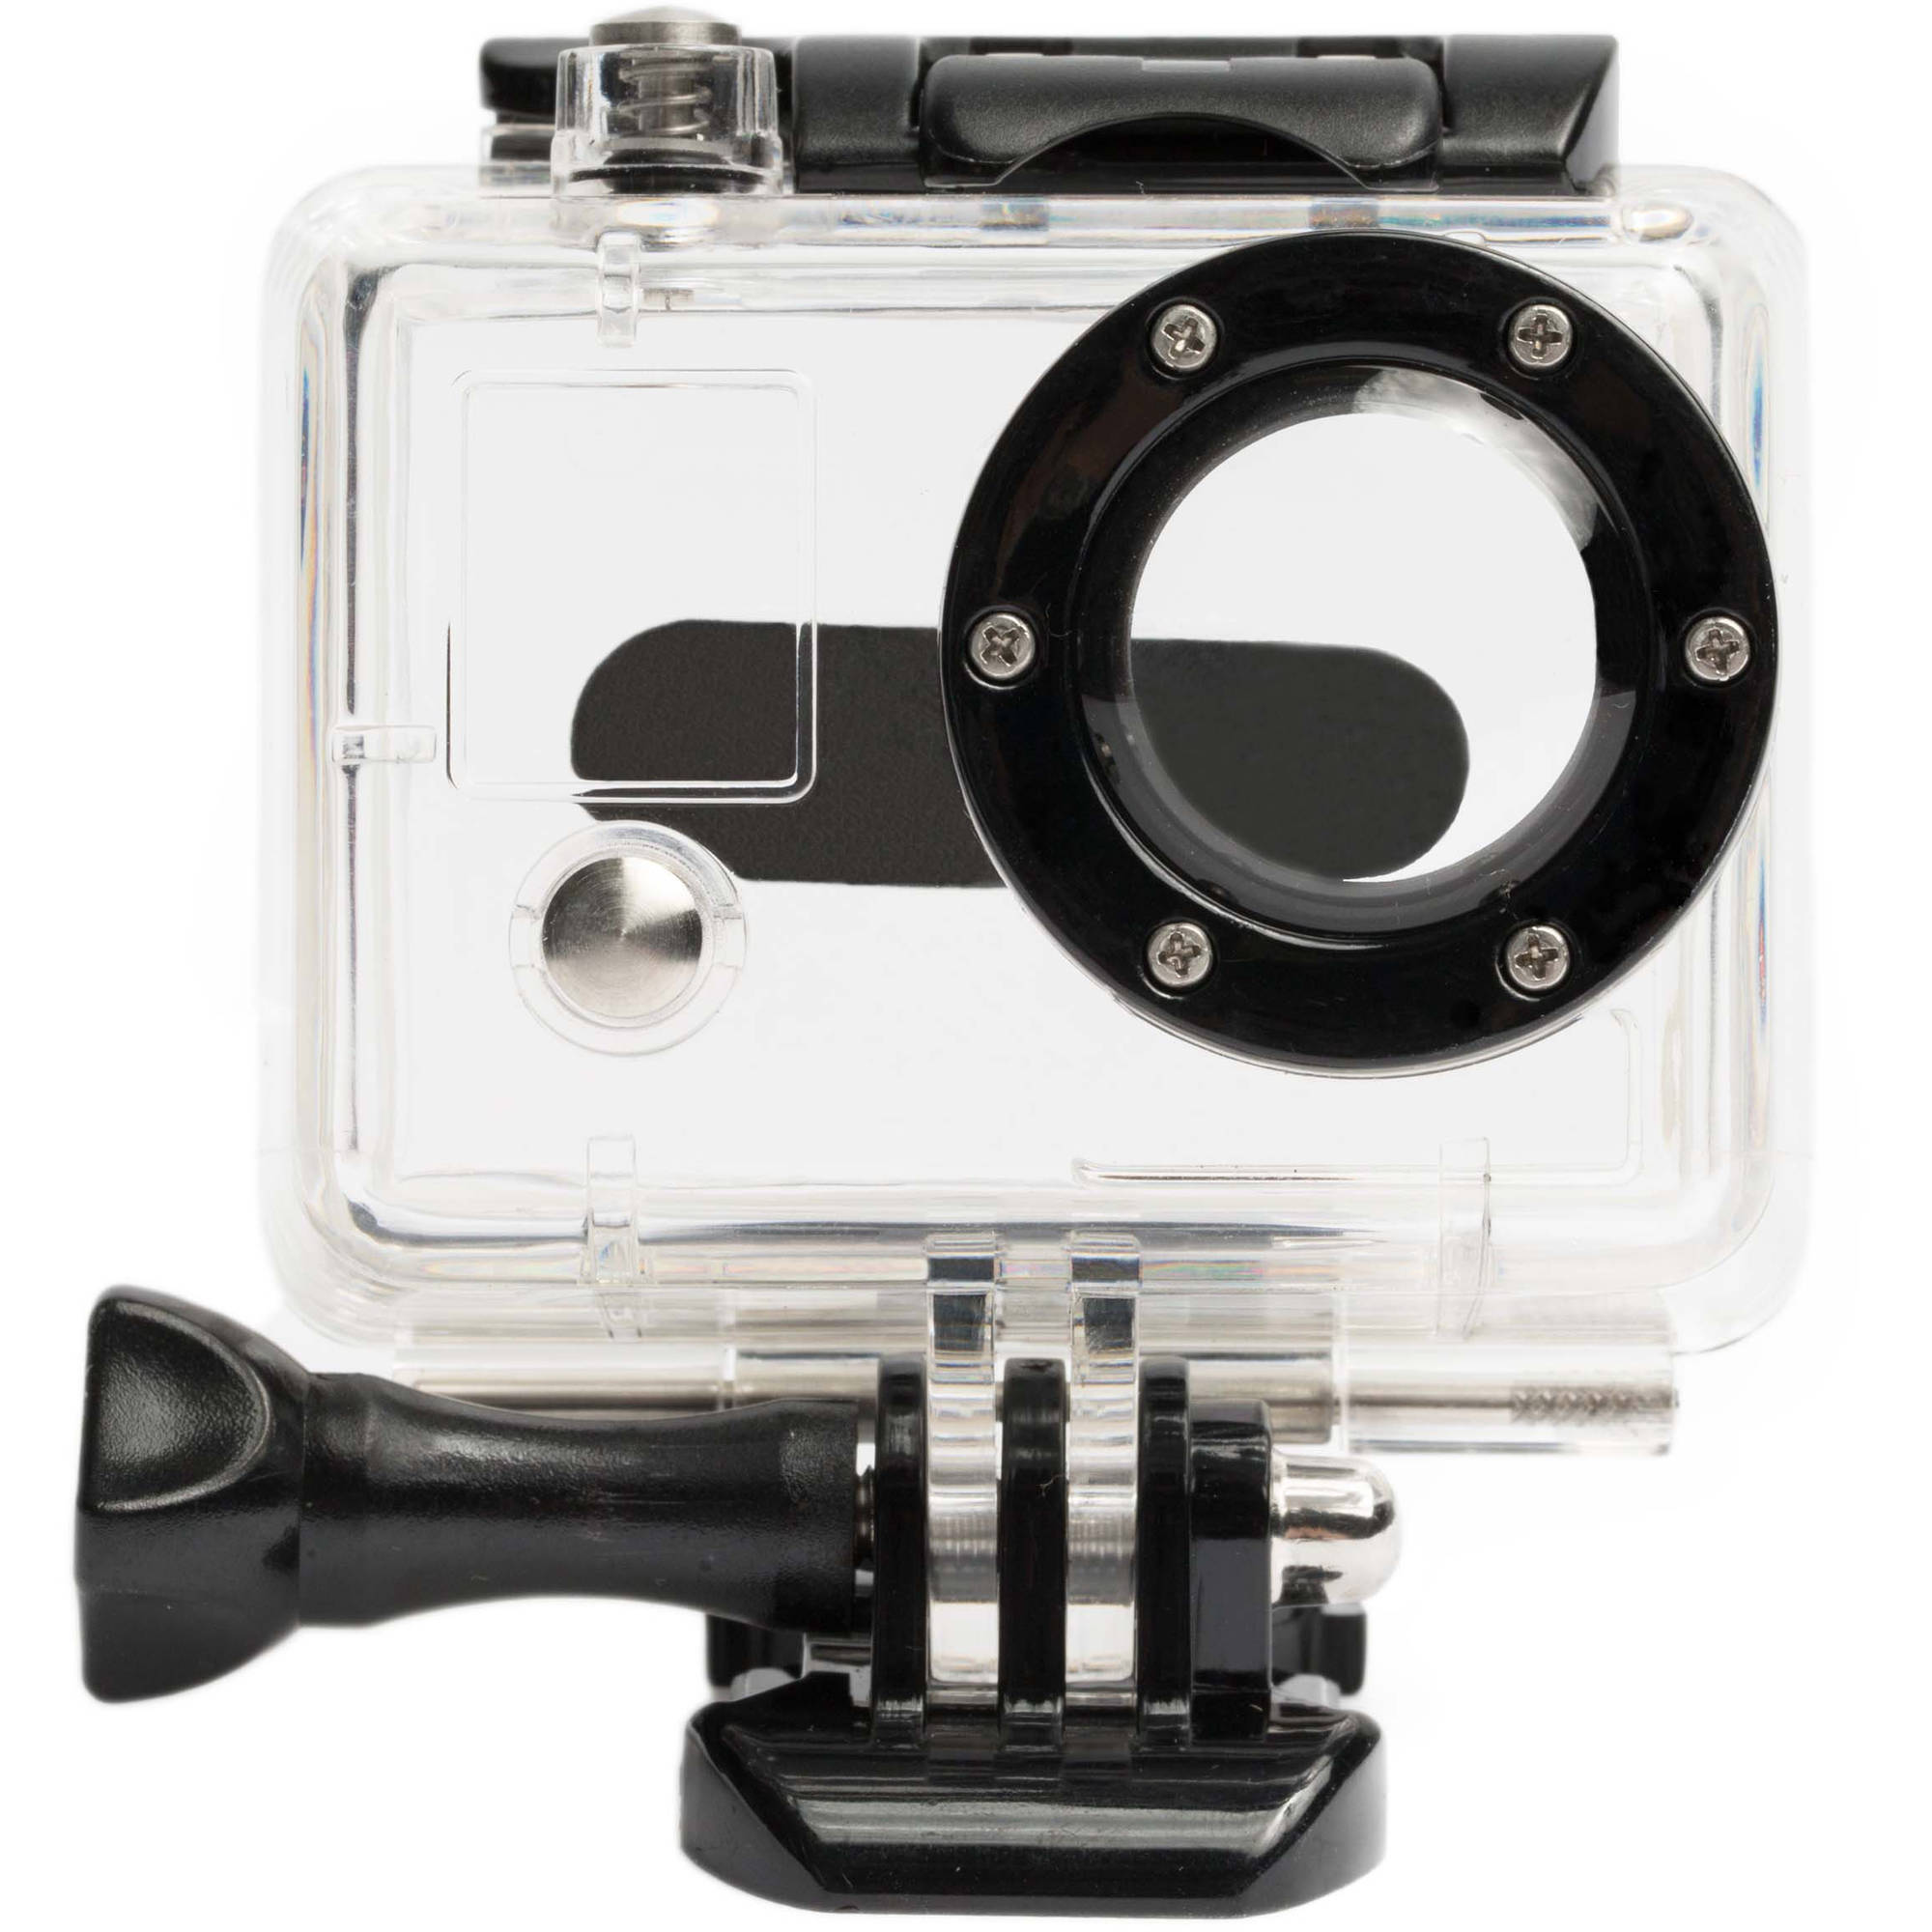 KAYATA Waterproof Protective Housing for Gopro Hero 2 & 1